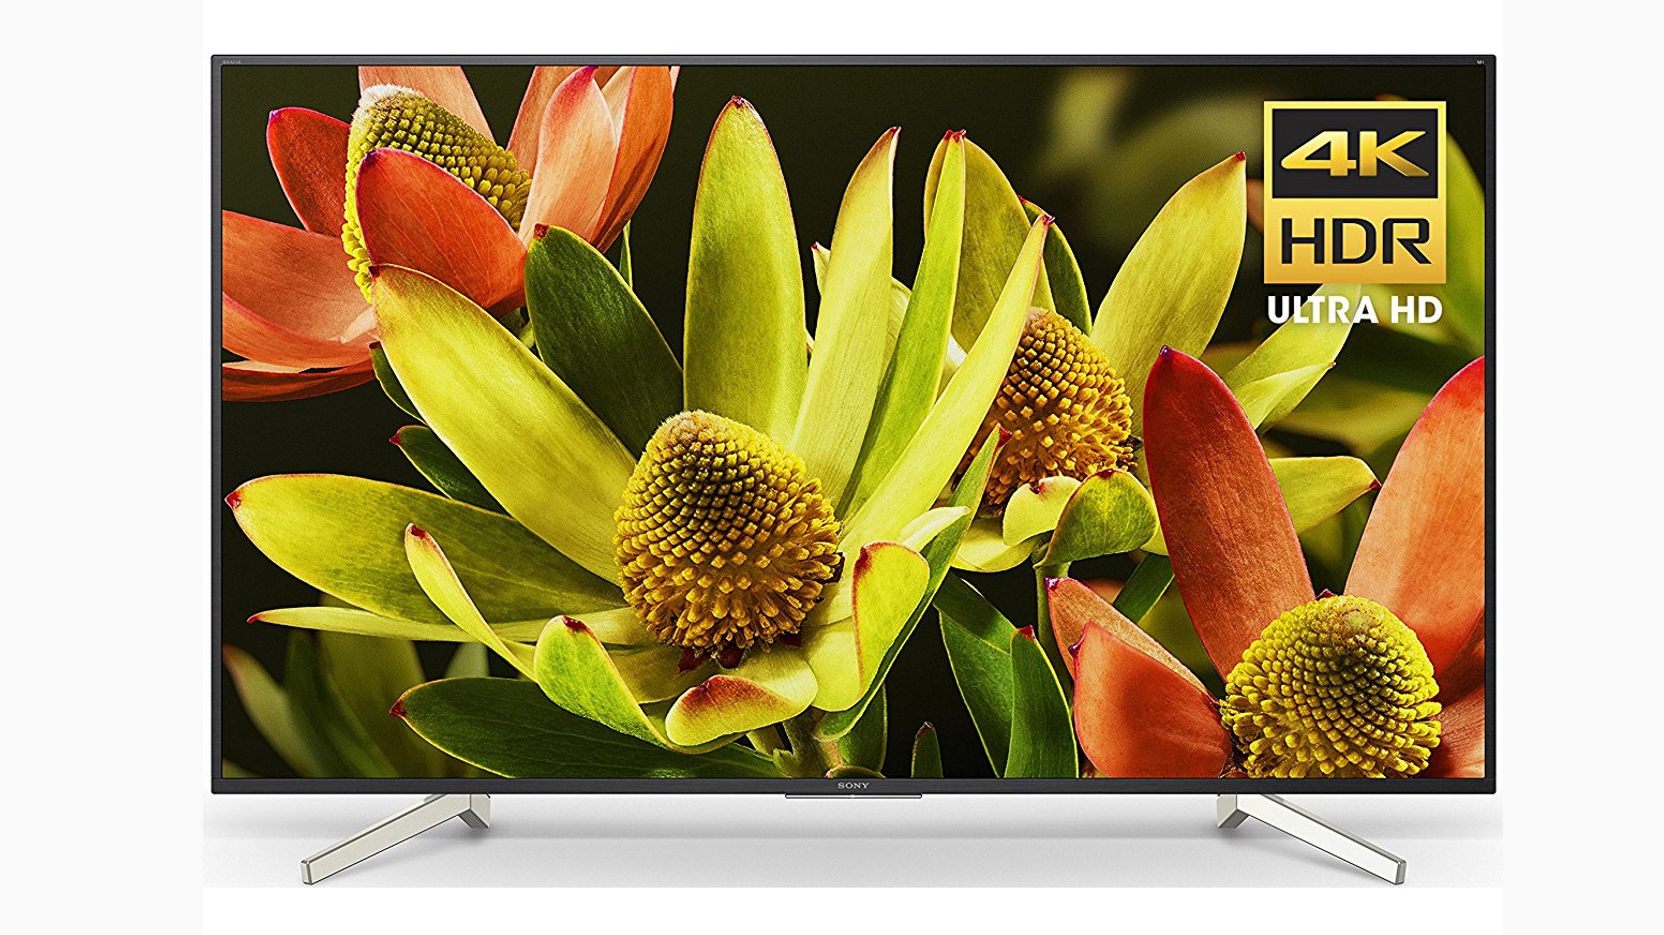 Early Prime Day super-deal: Save $900 on this Sony BRAVIA 70